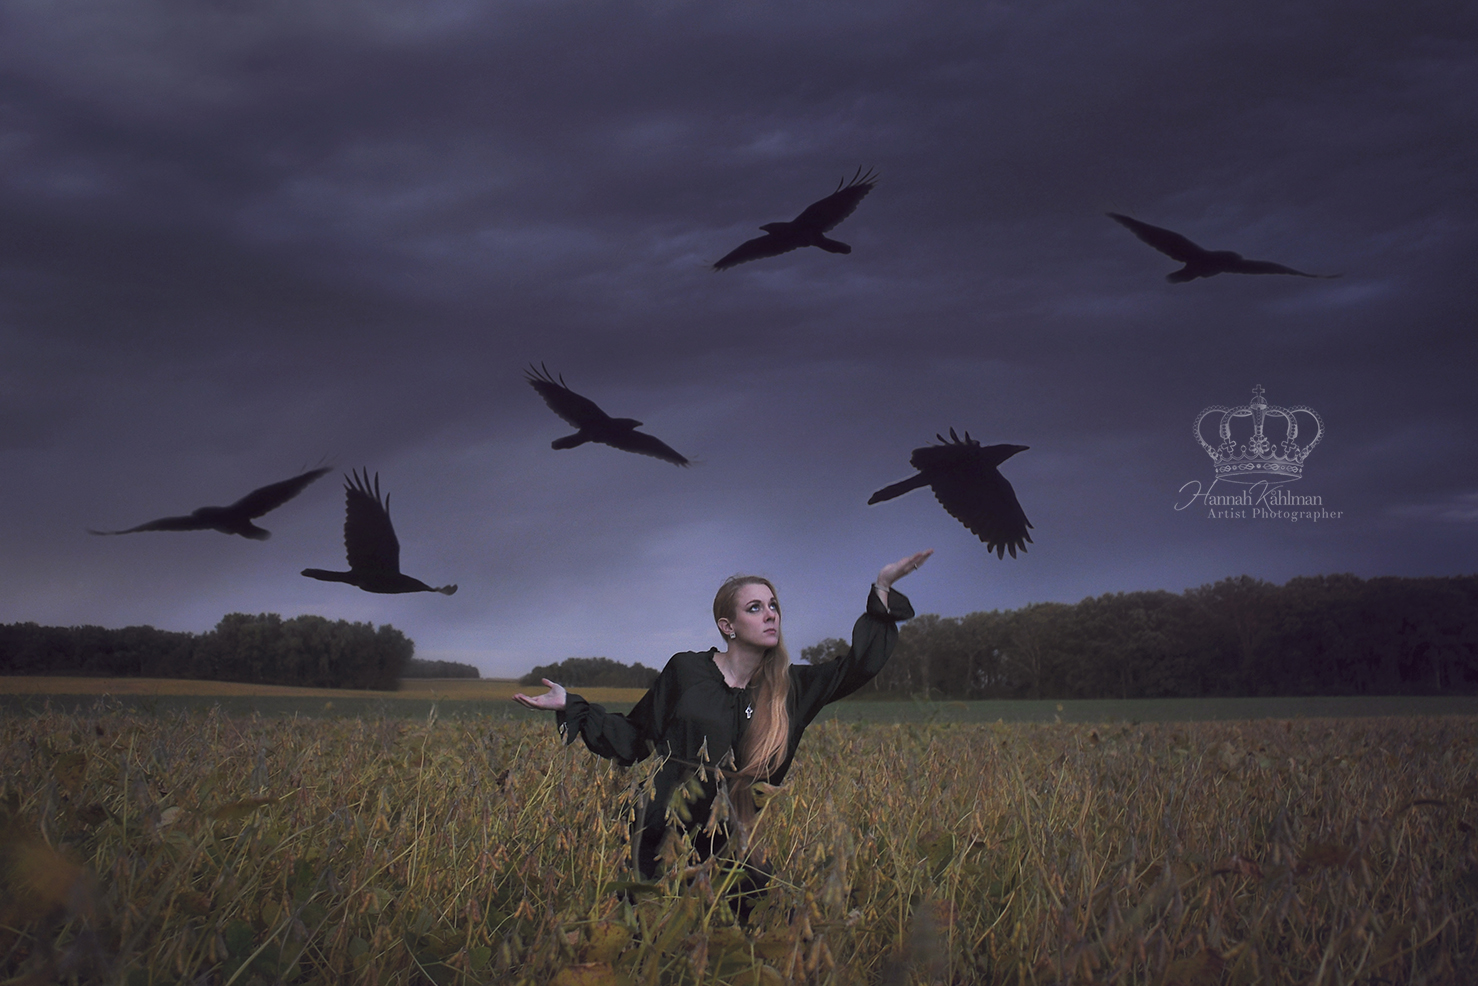 Fine_Art_self_portrait_with_birds_ravens_in_Minnesota_field_by_Anchorage_Alaska_conceptual_photograp